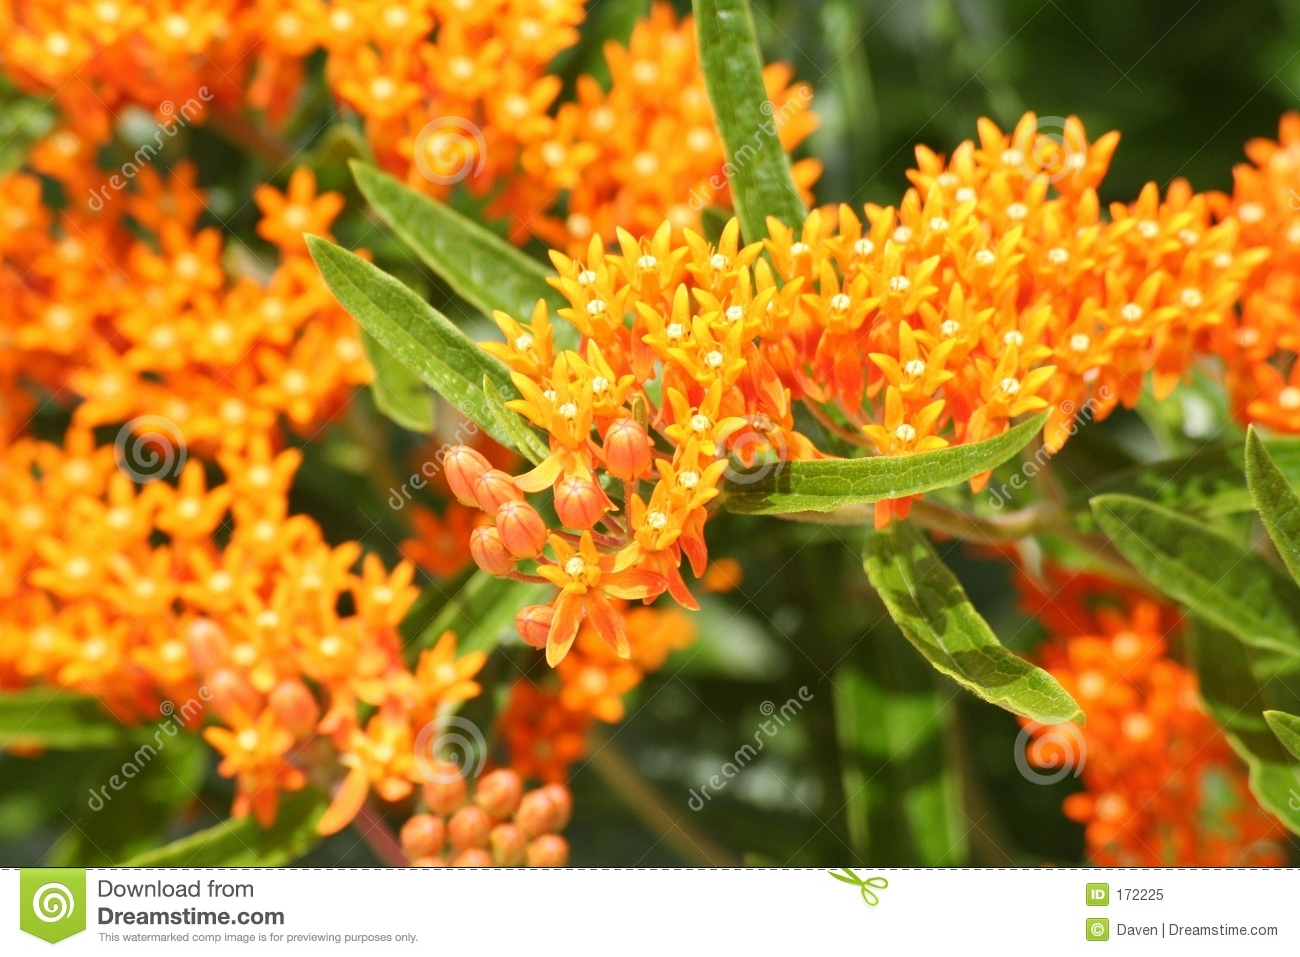 Download Garden5 stock image. Image of flower, environment, agriculture - 172225